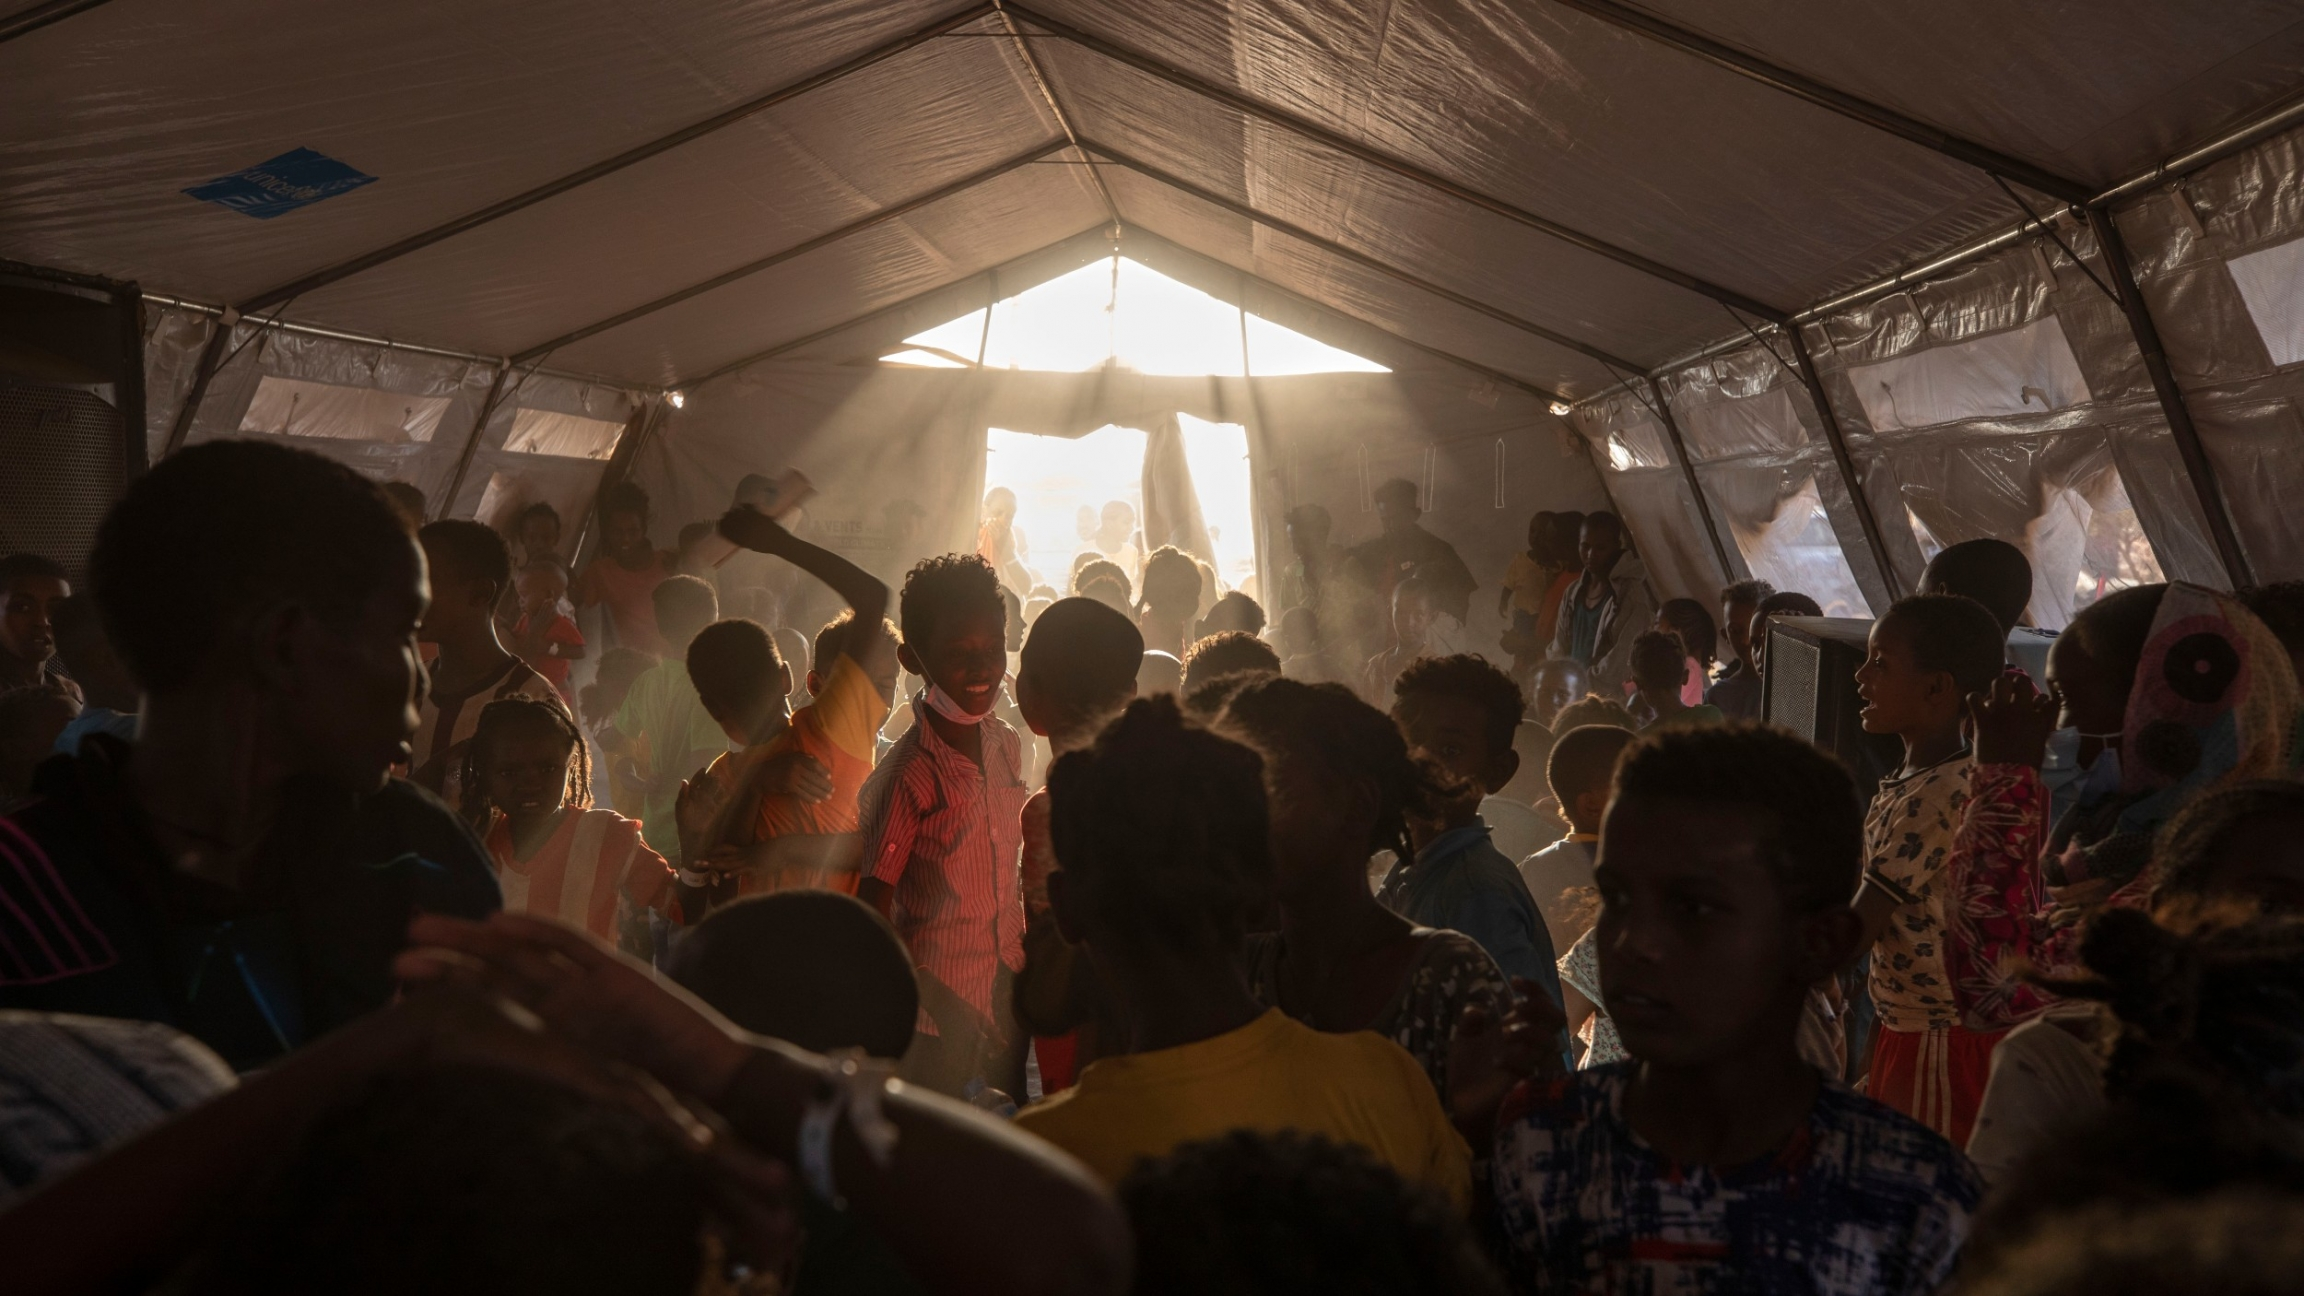 Tigray refugee children sing and dance inside a tent run by UNICEF for children's activities, in Umm Rakouba refugee camp in Qadarif, eastern Sudan, Thursday, Dec. 10, 2020.